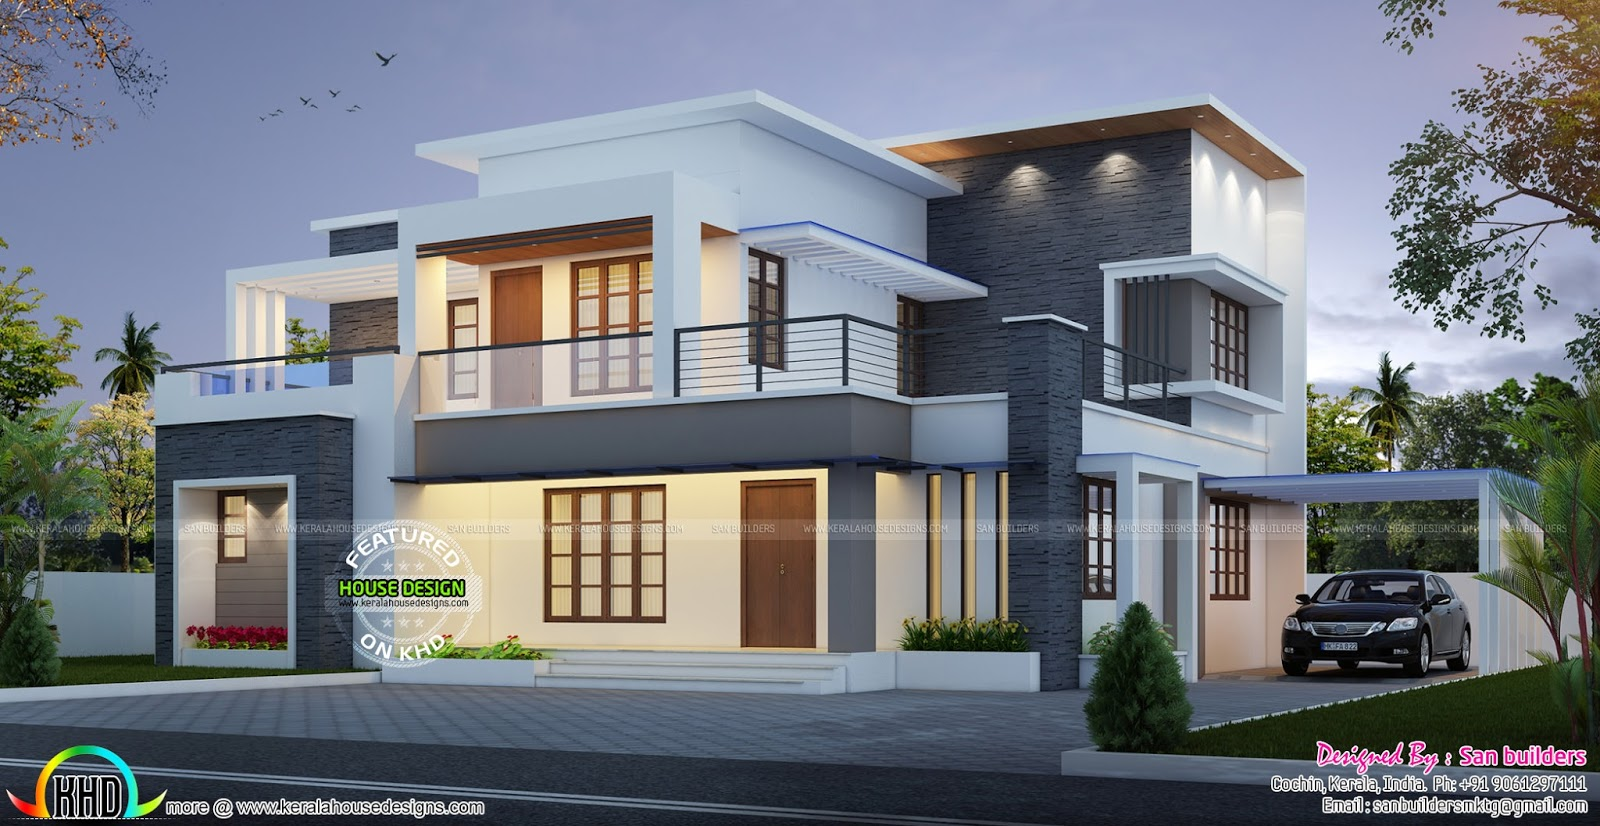 House plan and elevation by san builders kerala home for Contemporary building elevation